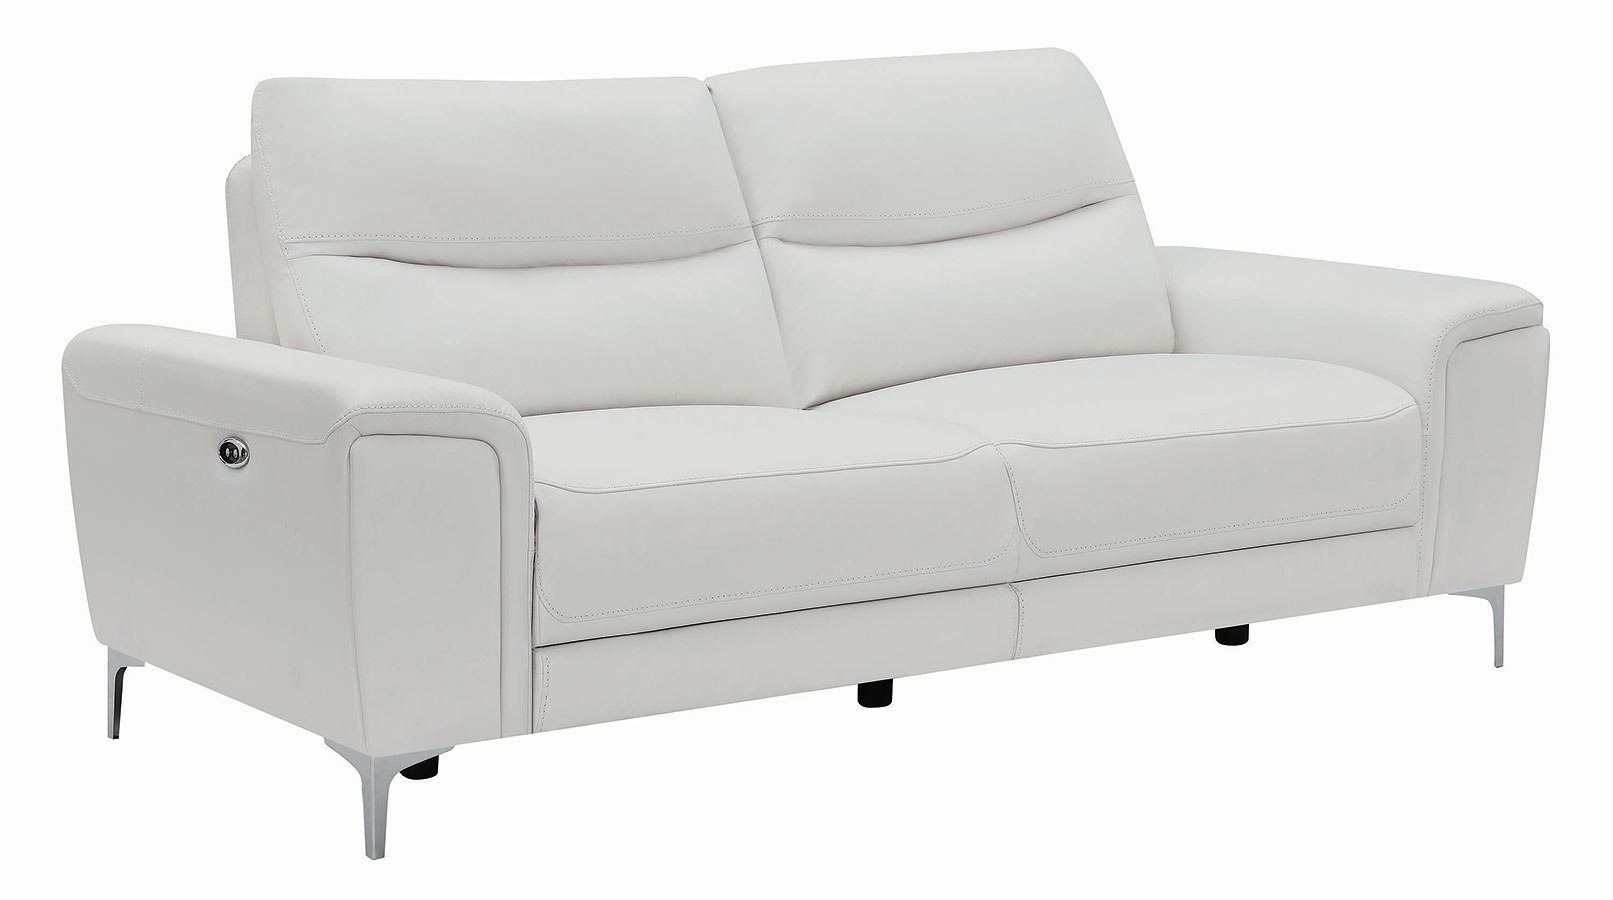 Surprising Largo Power Reclining Sofa White Home Interior And Landscaping Palasignezvosmurscom